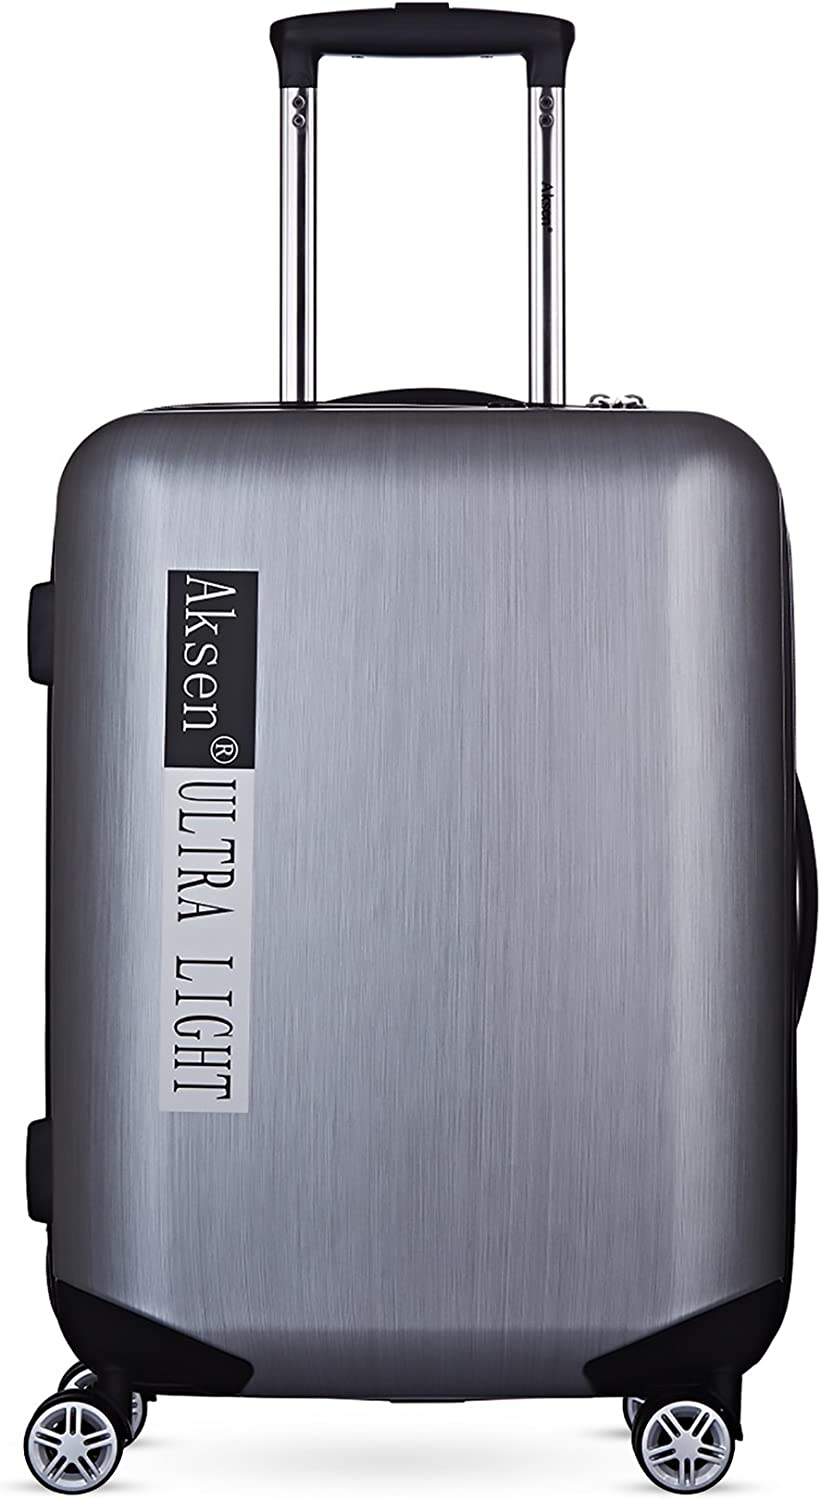 Silver Grey Carry on Lightweight Upright Hardshell Polycarbonate Rolling Extreme Spinner Trolley Durable Luggage On Wheel 22x16x8.5 w TSA Lock With Push-Button Aluminum Handle /& ABS System